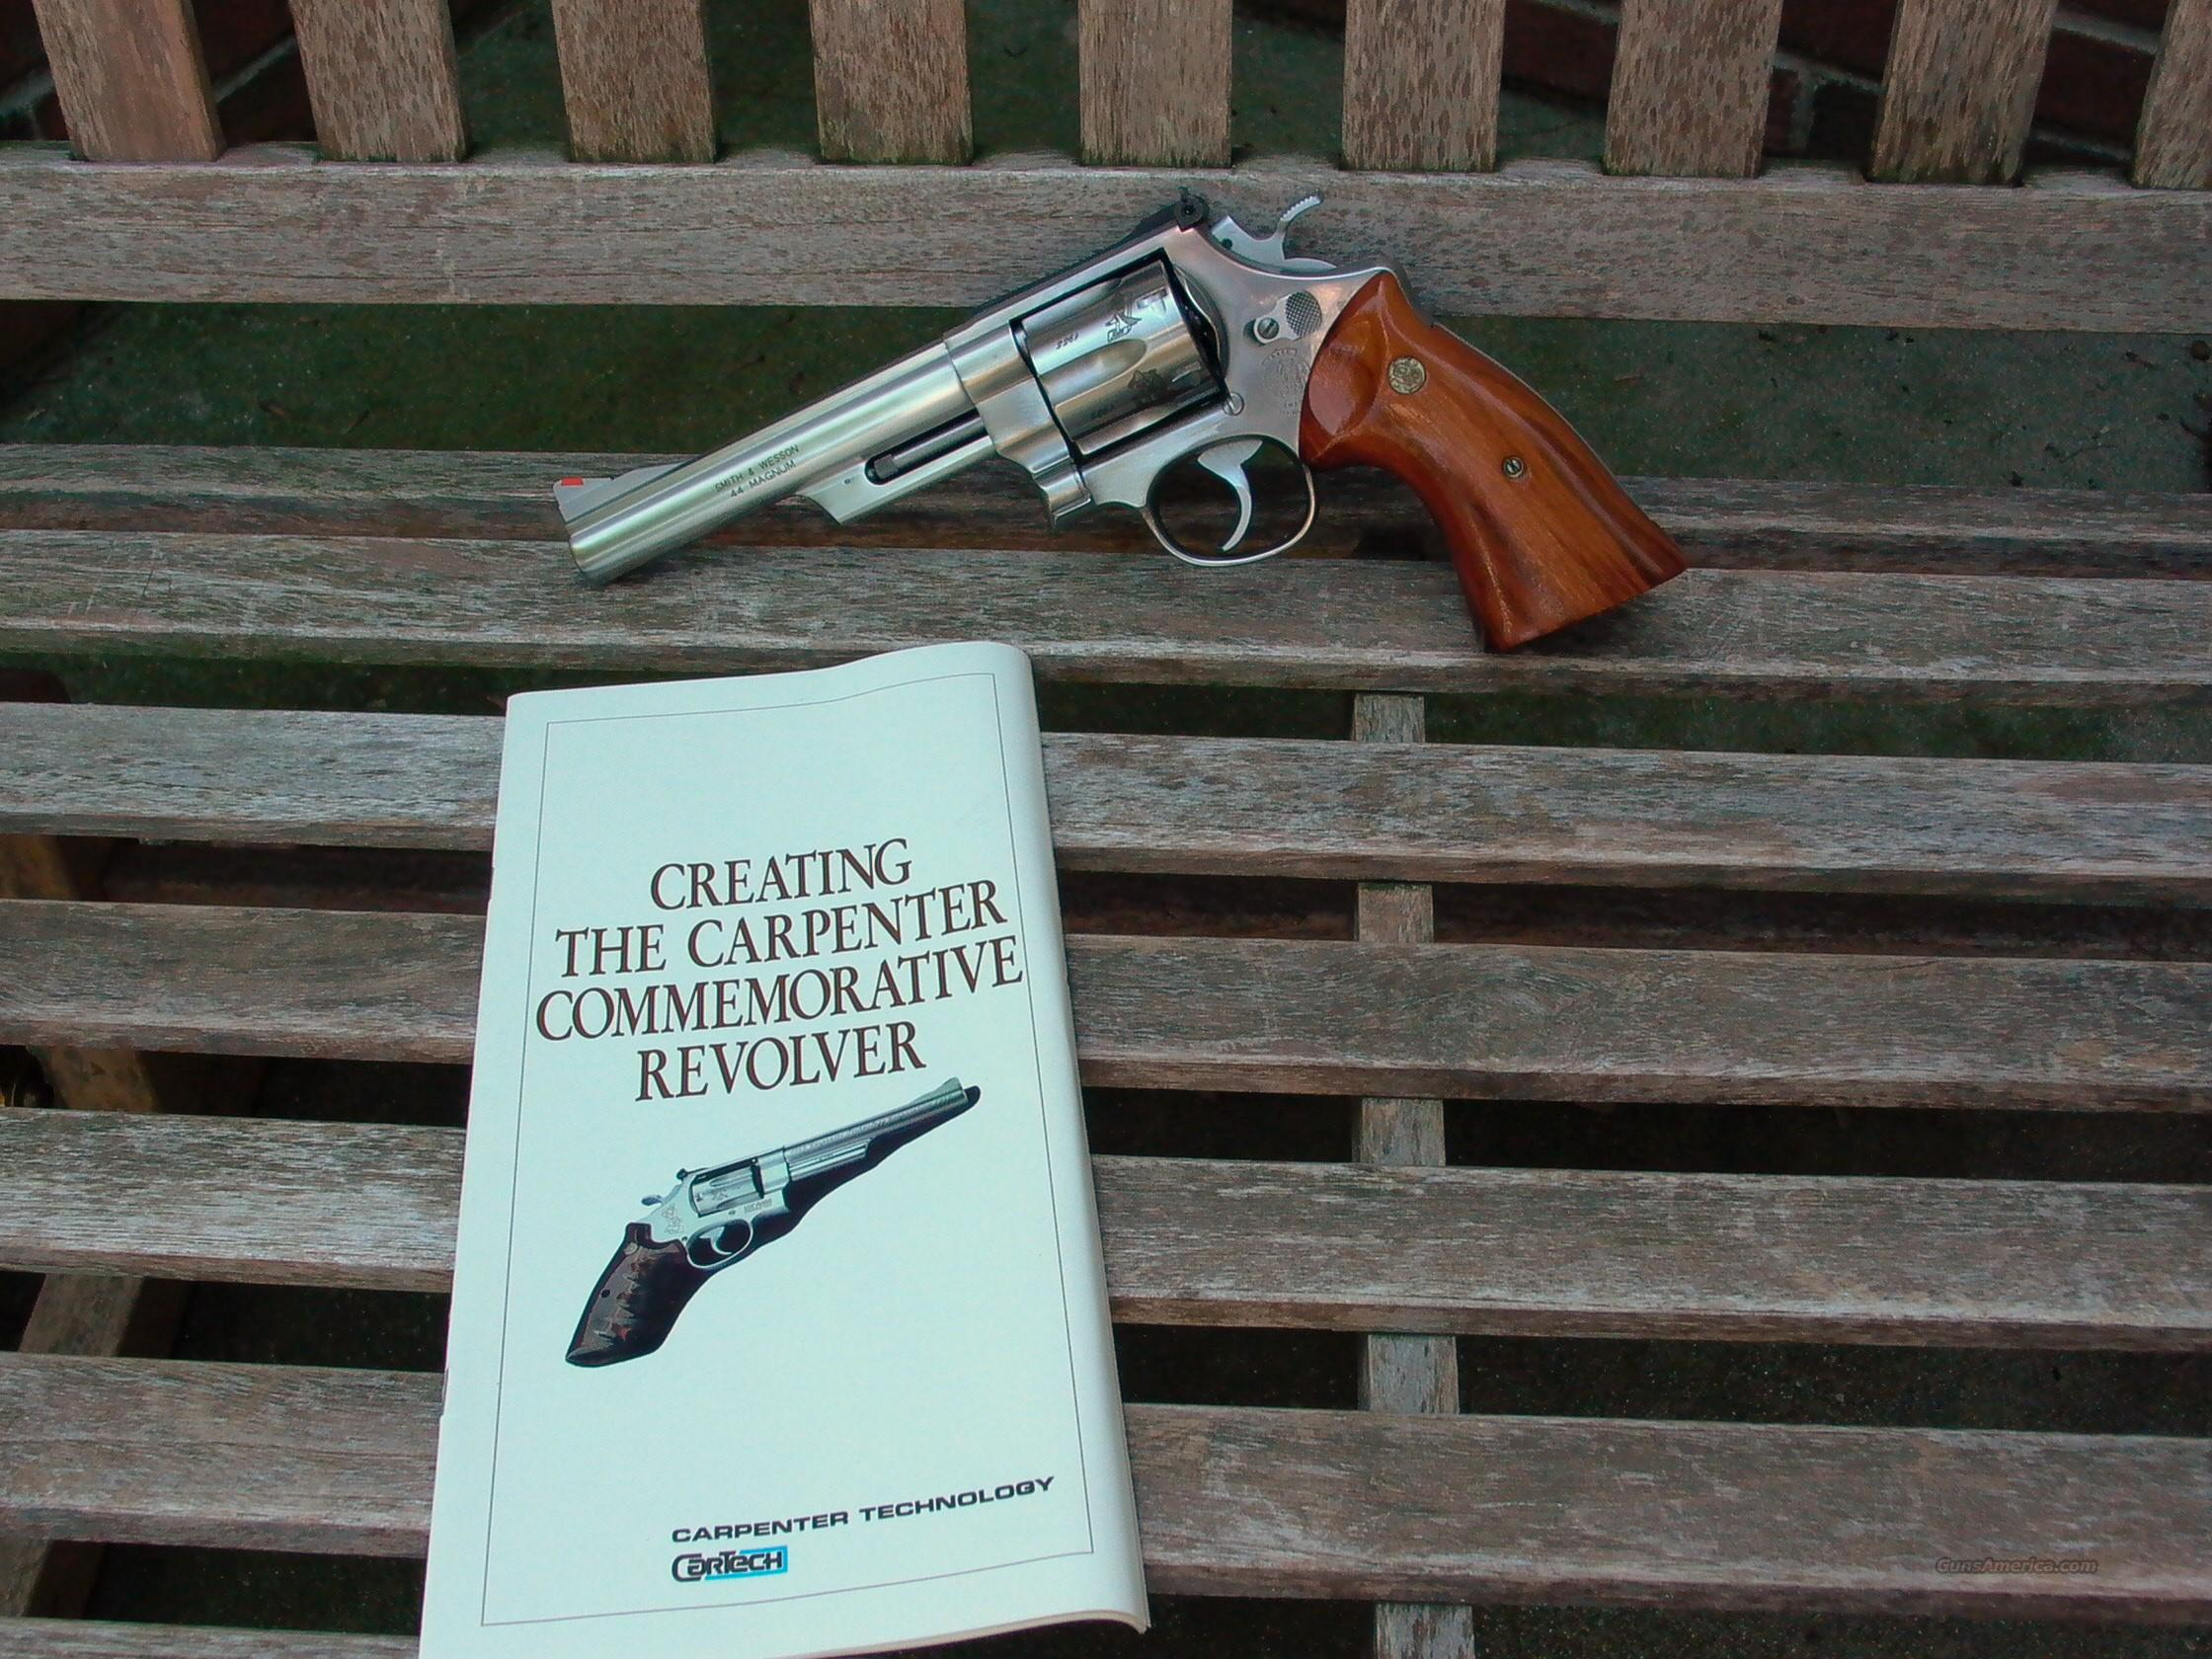 629 6 inch 44 Mag Carpenter Technology Commemorative  Guns > Pistols > Smith & Wesson Revolvers > Model 629